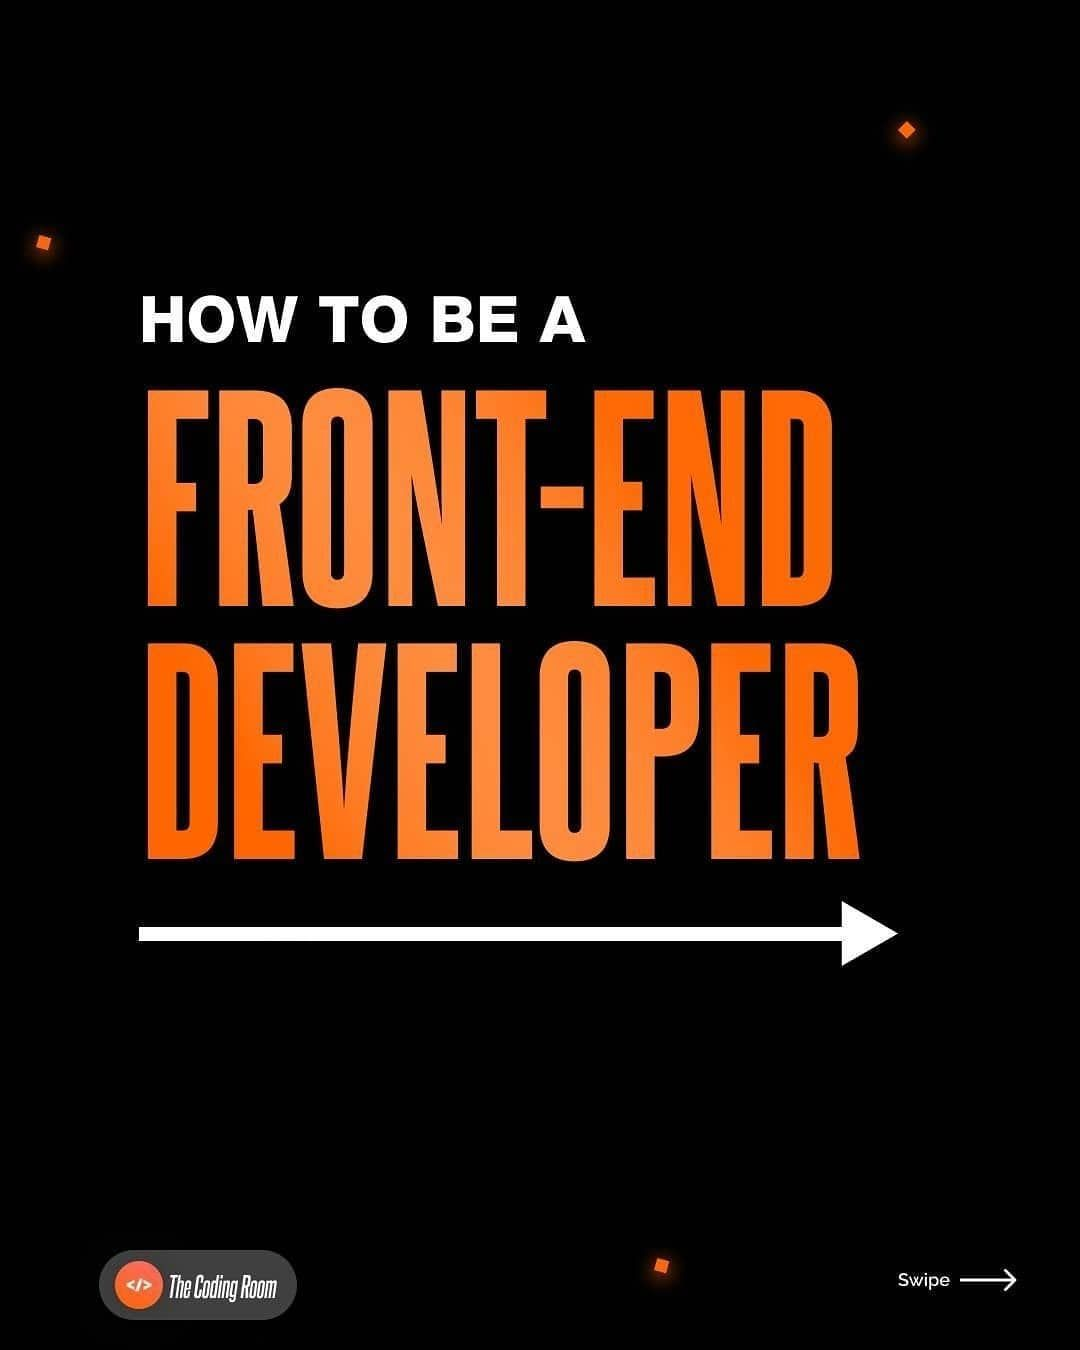 how to be a frontend developer